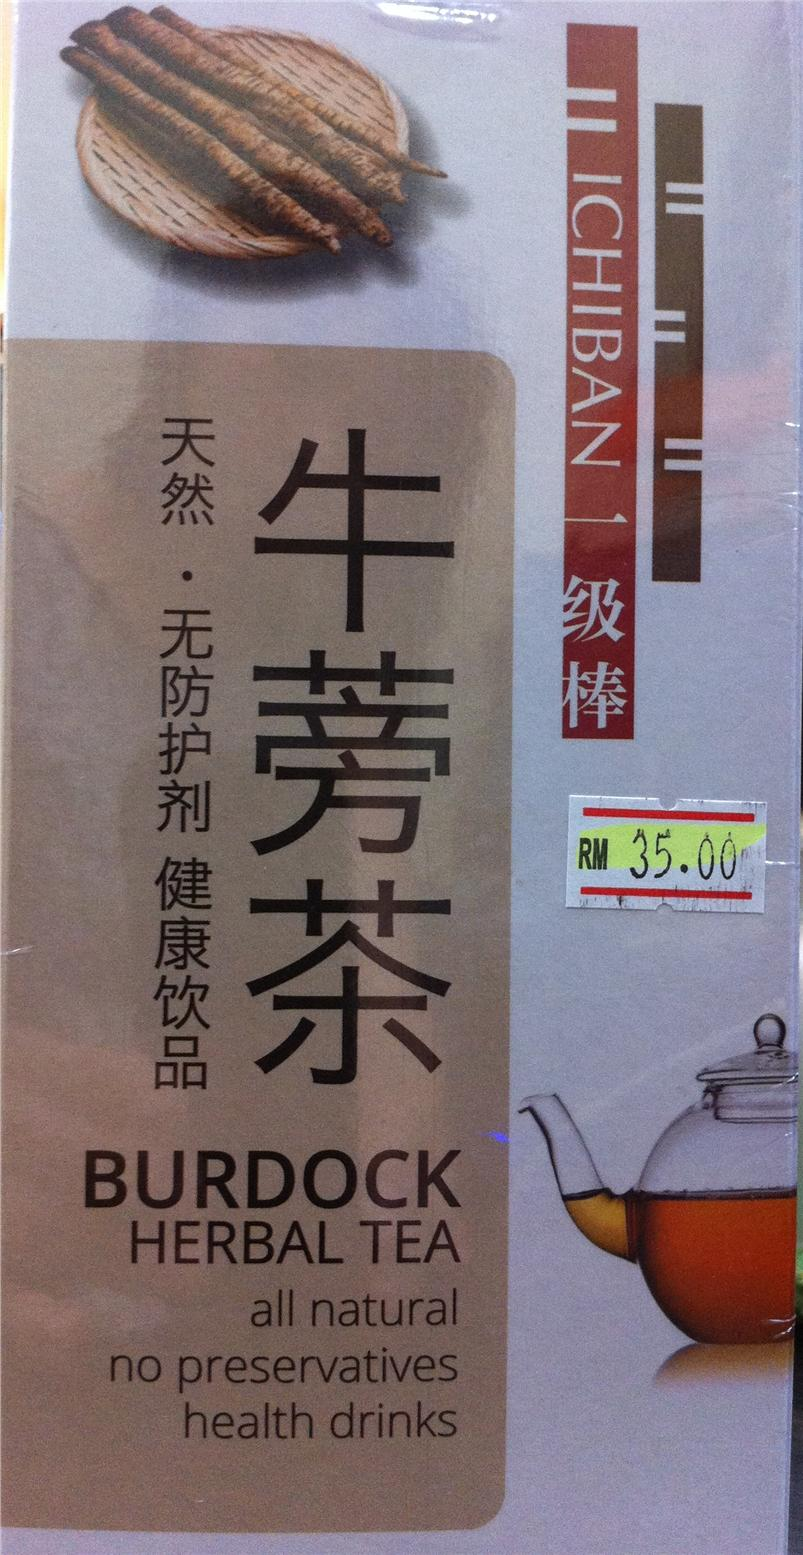 Burdock Herbal Tea -Suitable for Vegetarian